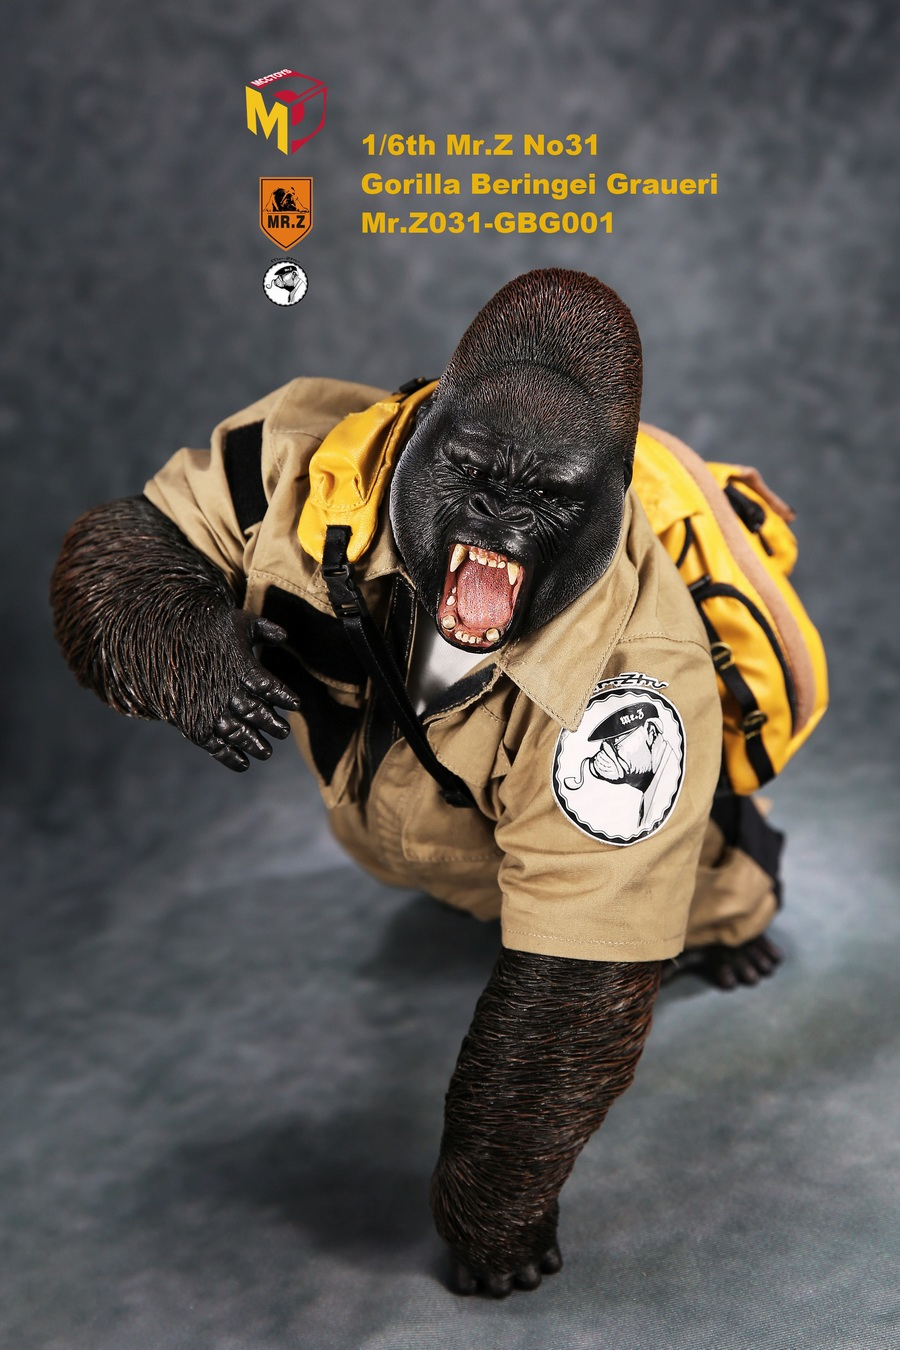 NEW PRODUCT: Mr.Z new product: 1/6 simulation animal model 31st bomb - African lowland gorilla (all 2 heads can be changed to upper limbs) 10101010